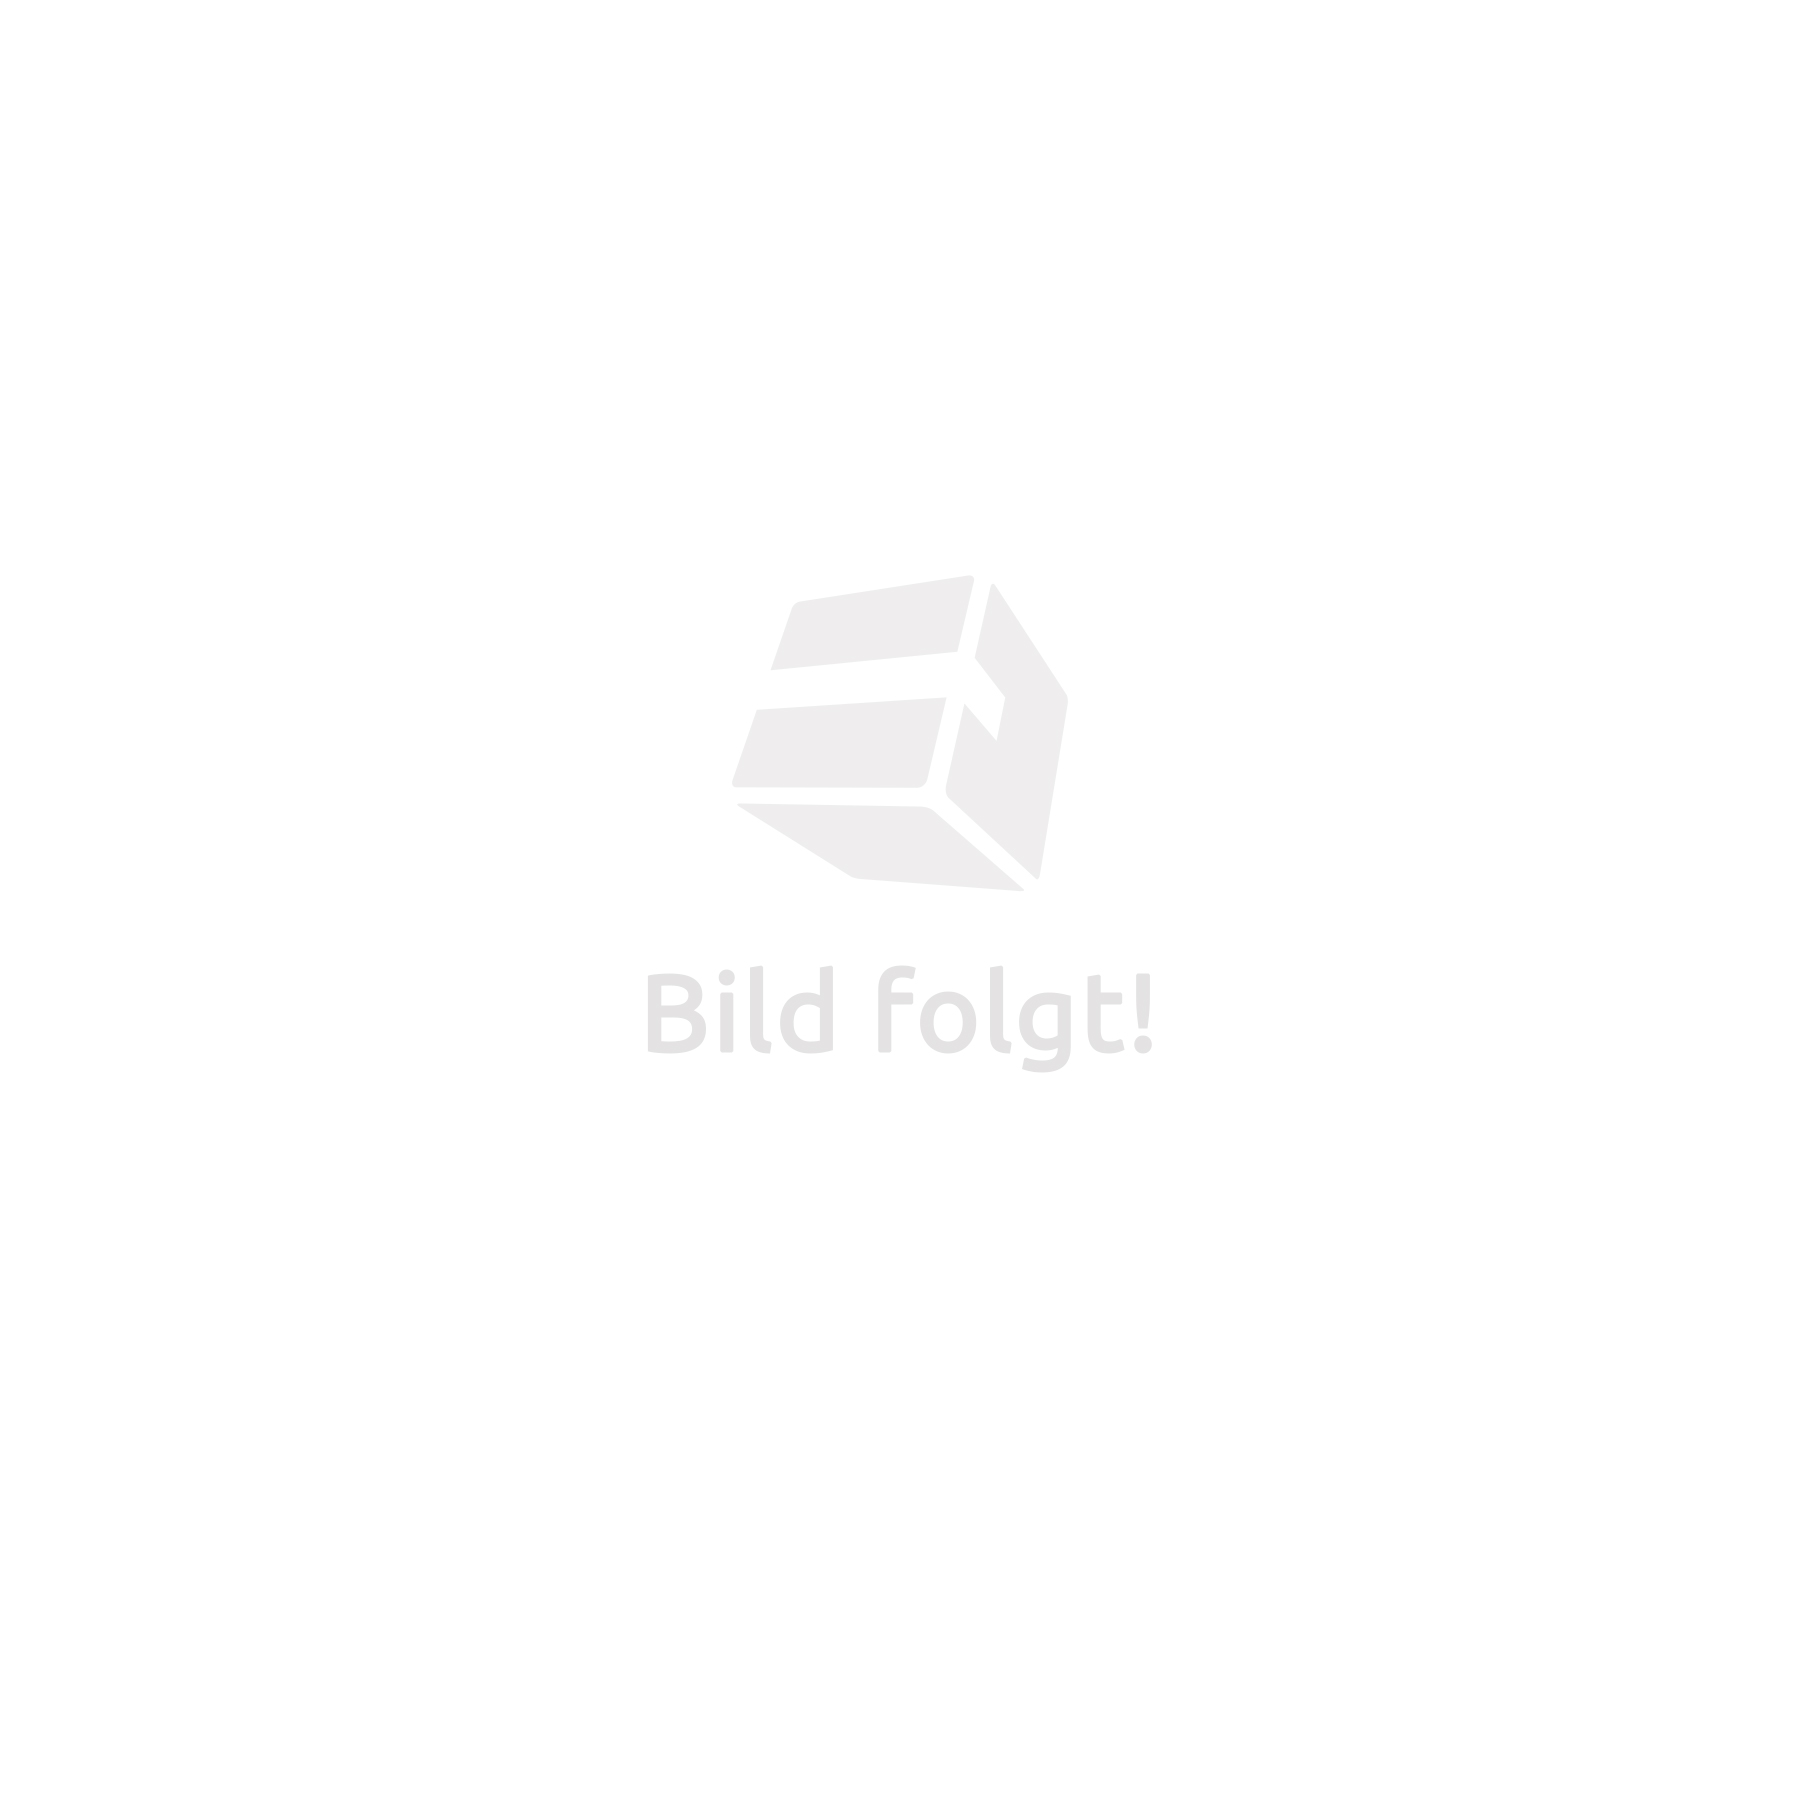 LED-Strip mit 300 LEDs, 5m Länge